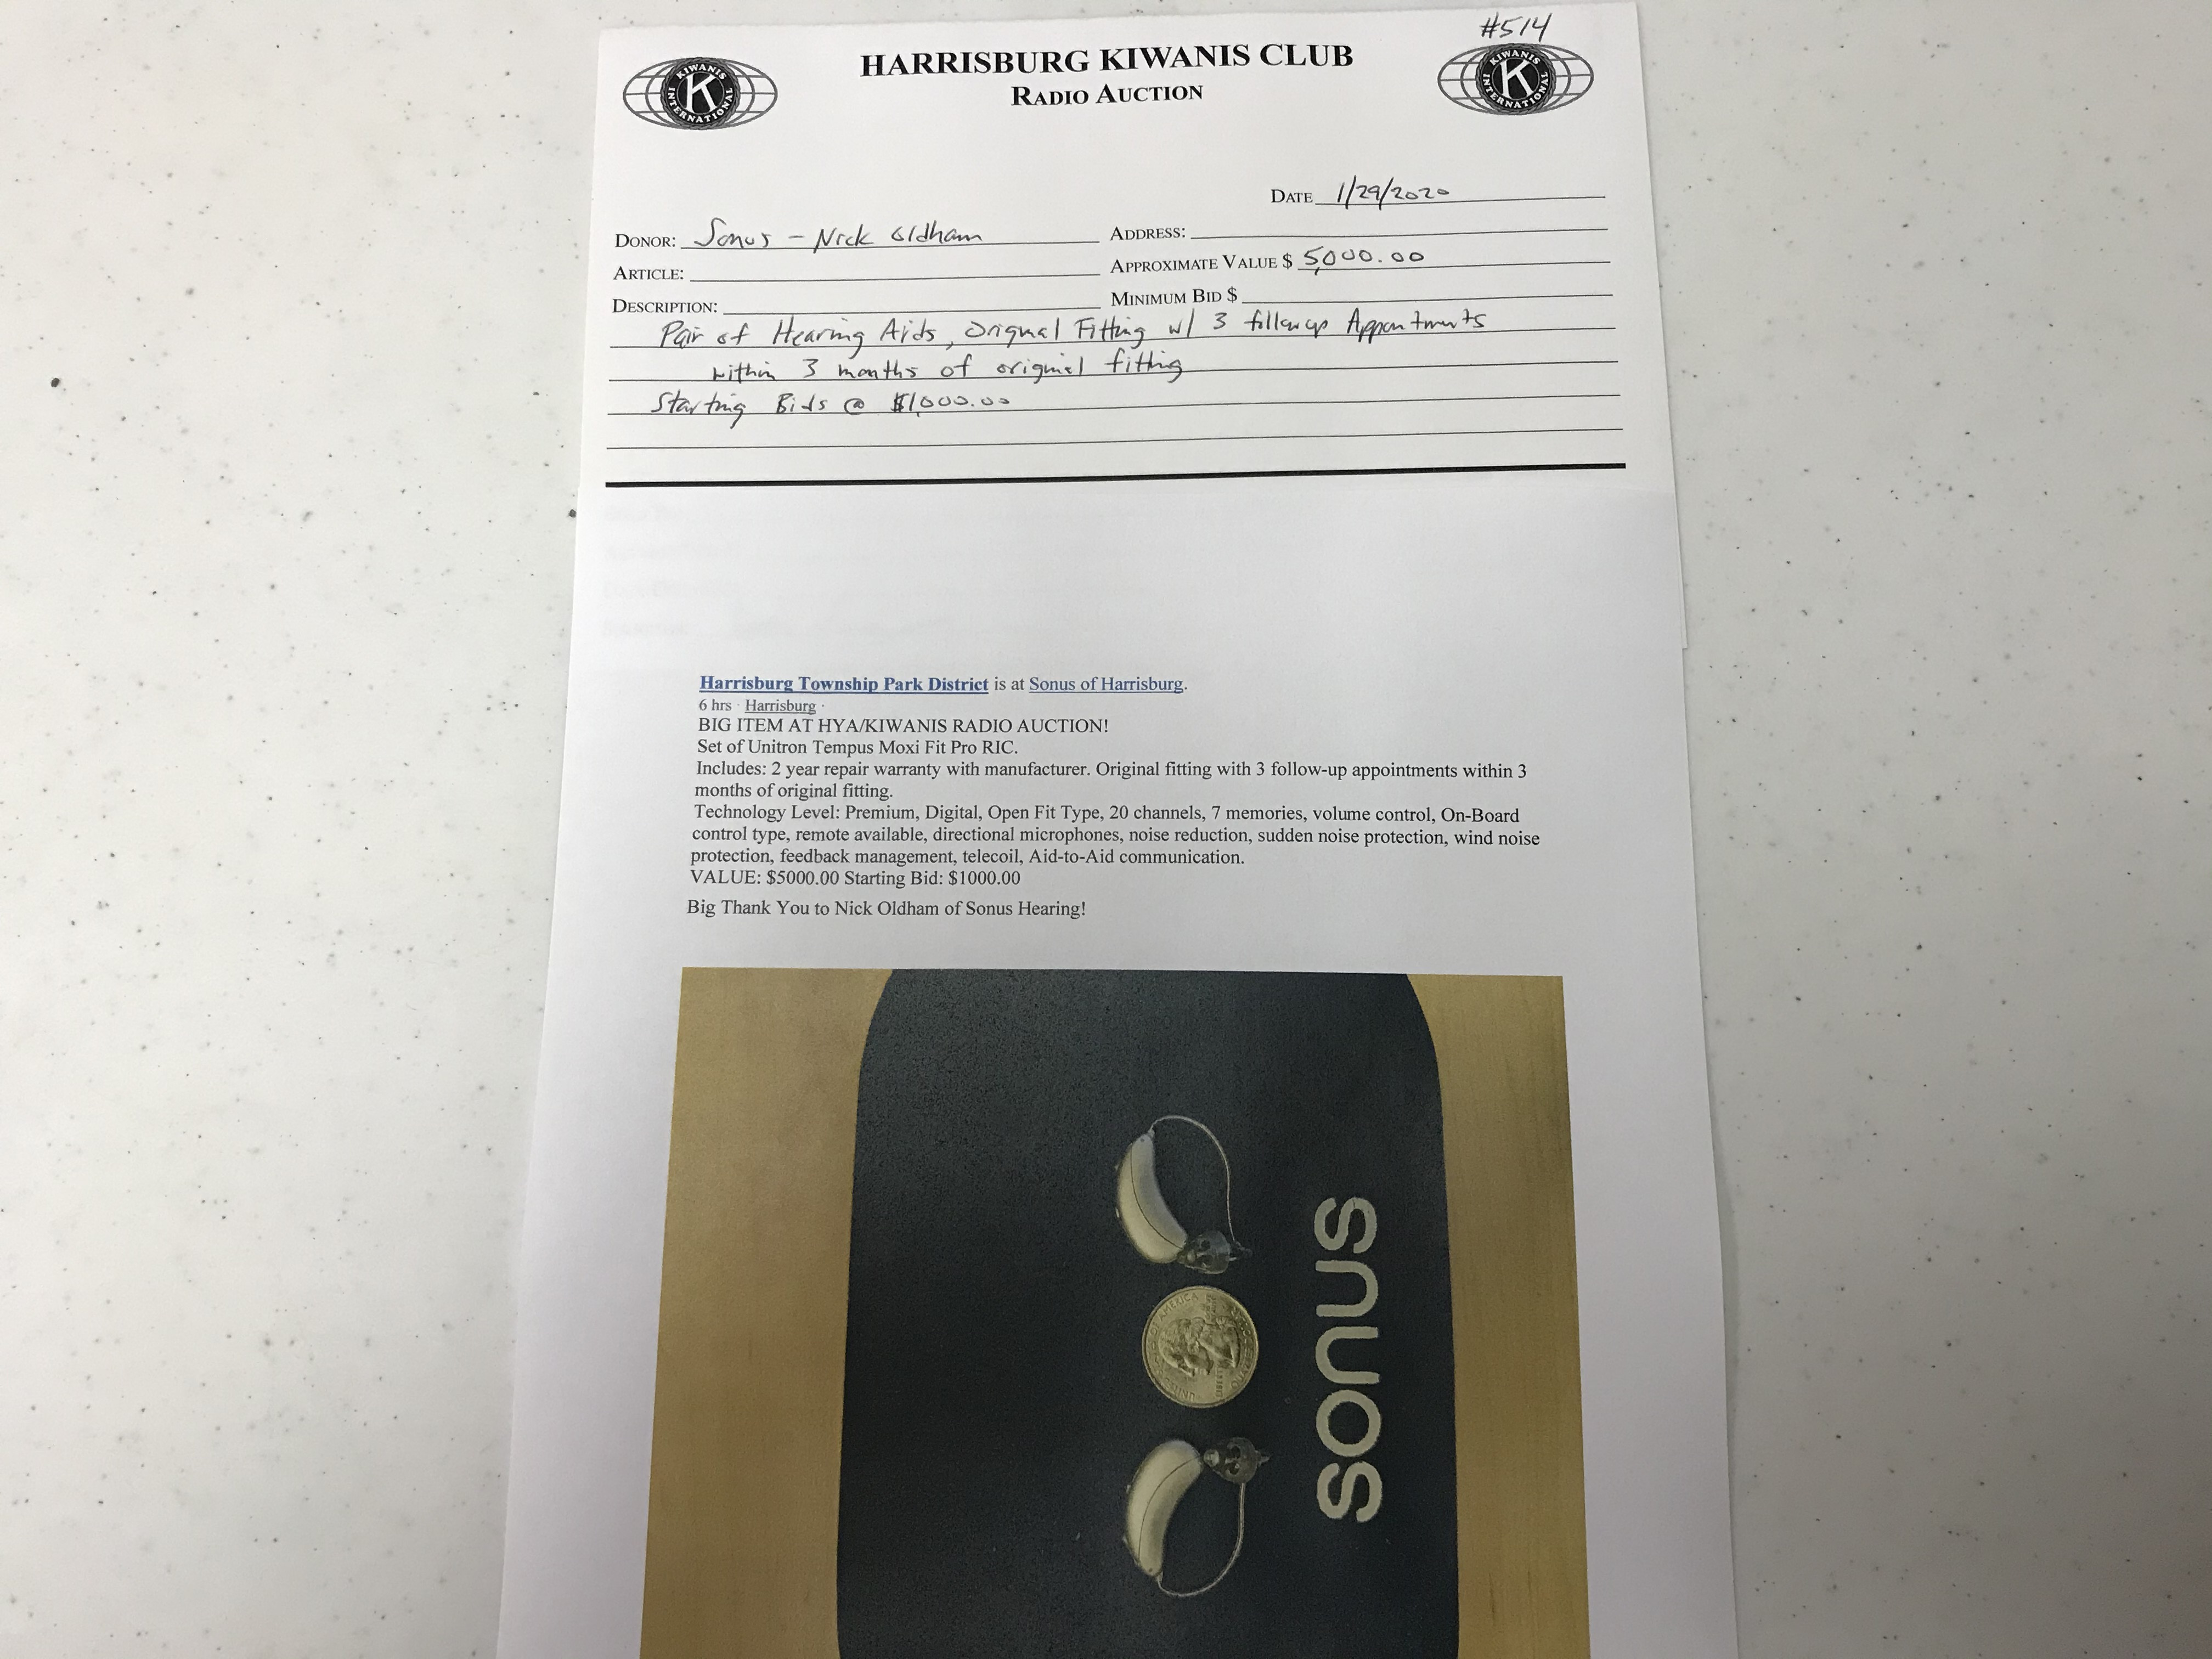 Item 514 - Sonus Pair of Hearing Aids and Fitting Appointments (Starting Bid @ $1,000)